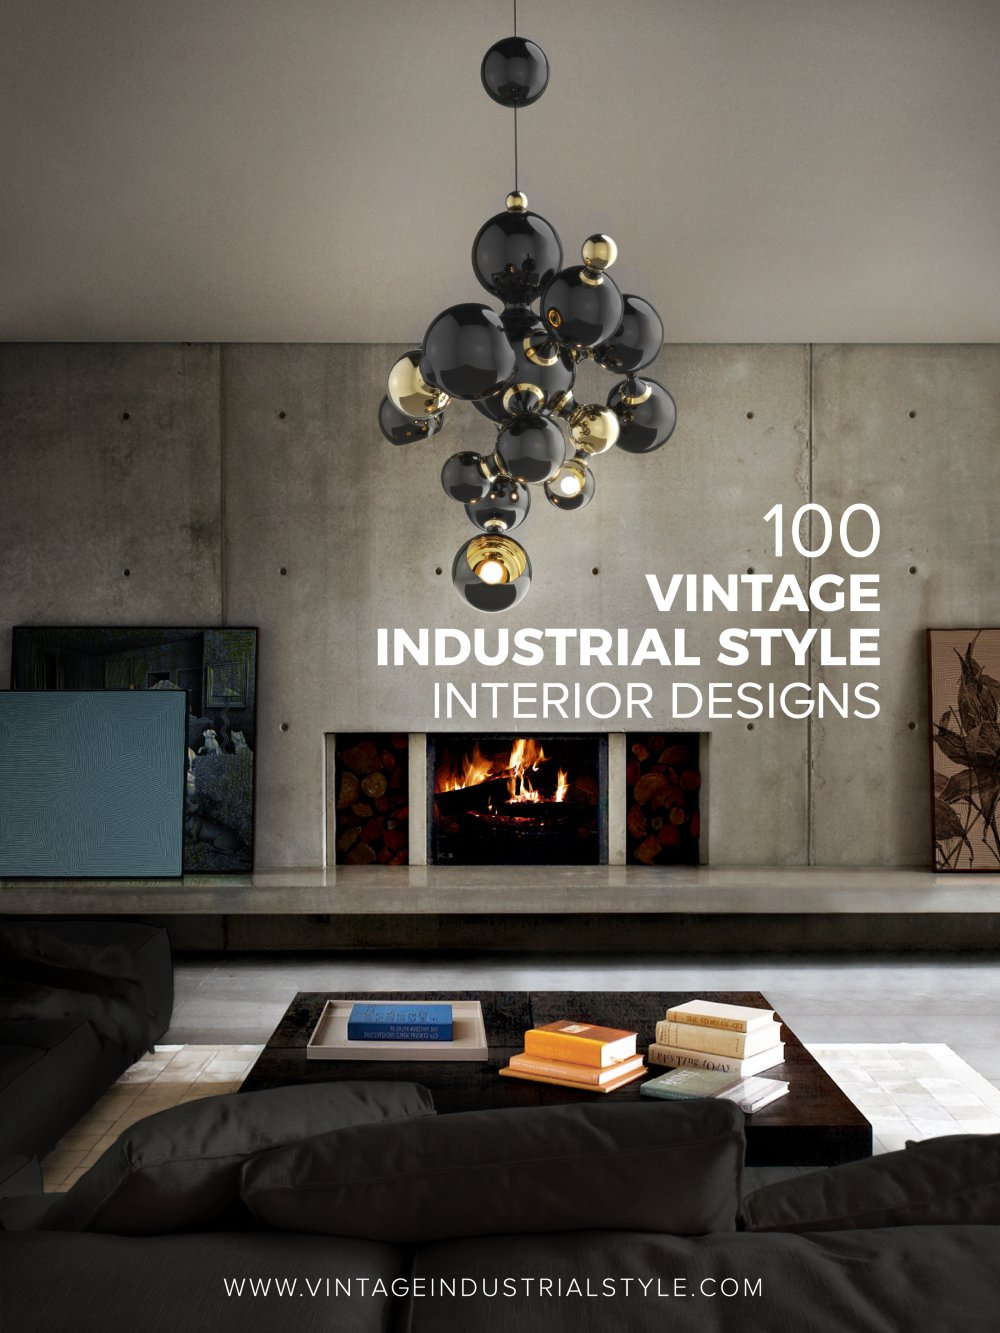 100 Vintage Industrial Style Interior Designs - 1 / 87 Pages & 100 Vintage Industrial Style Interior Designs - DelightFULL - PDF ...